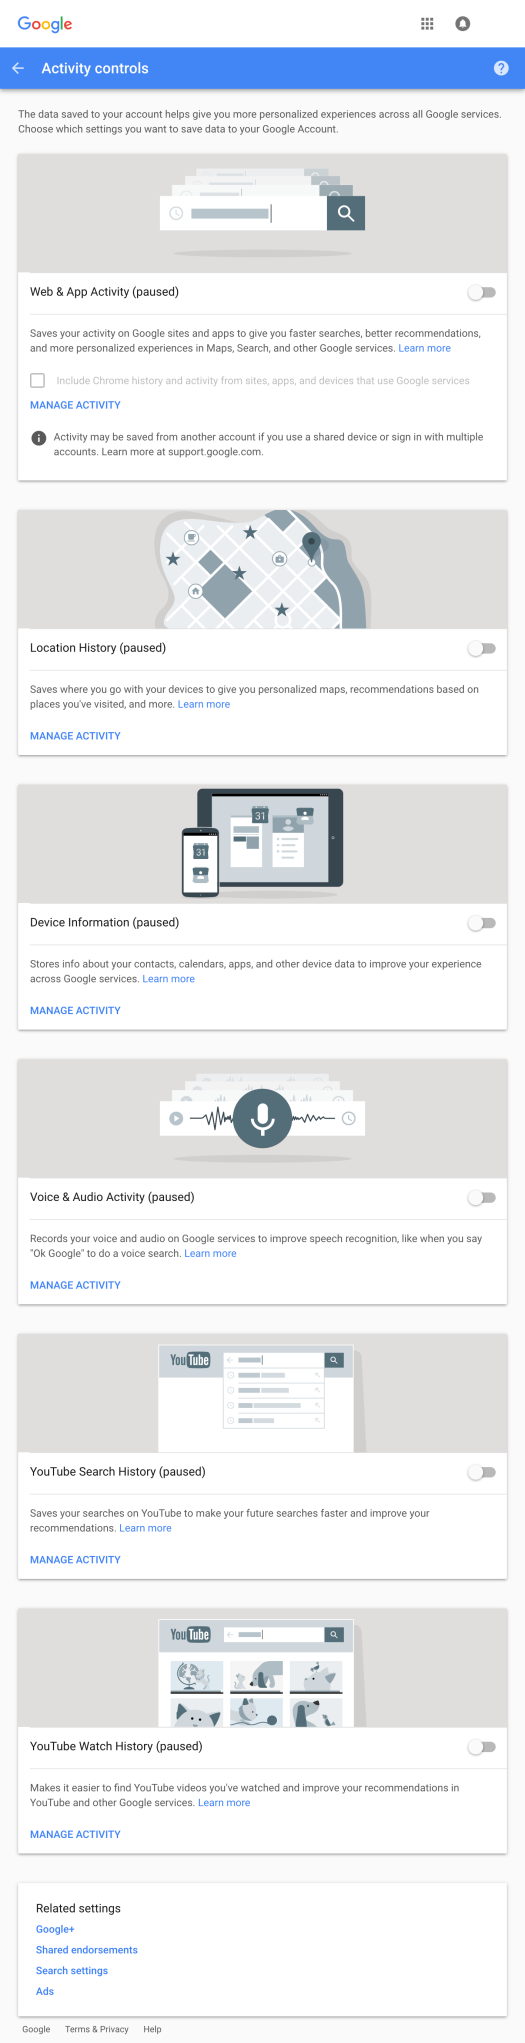 Screenshot of Google's Activity Controls permissions settings webpage